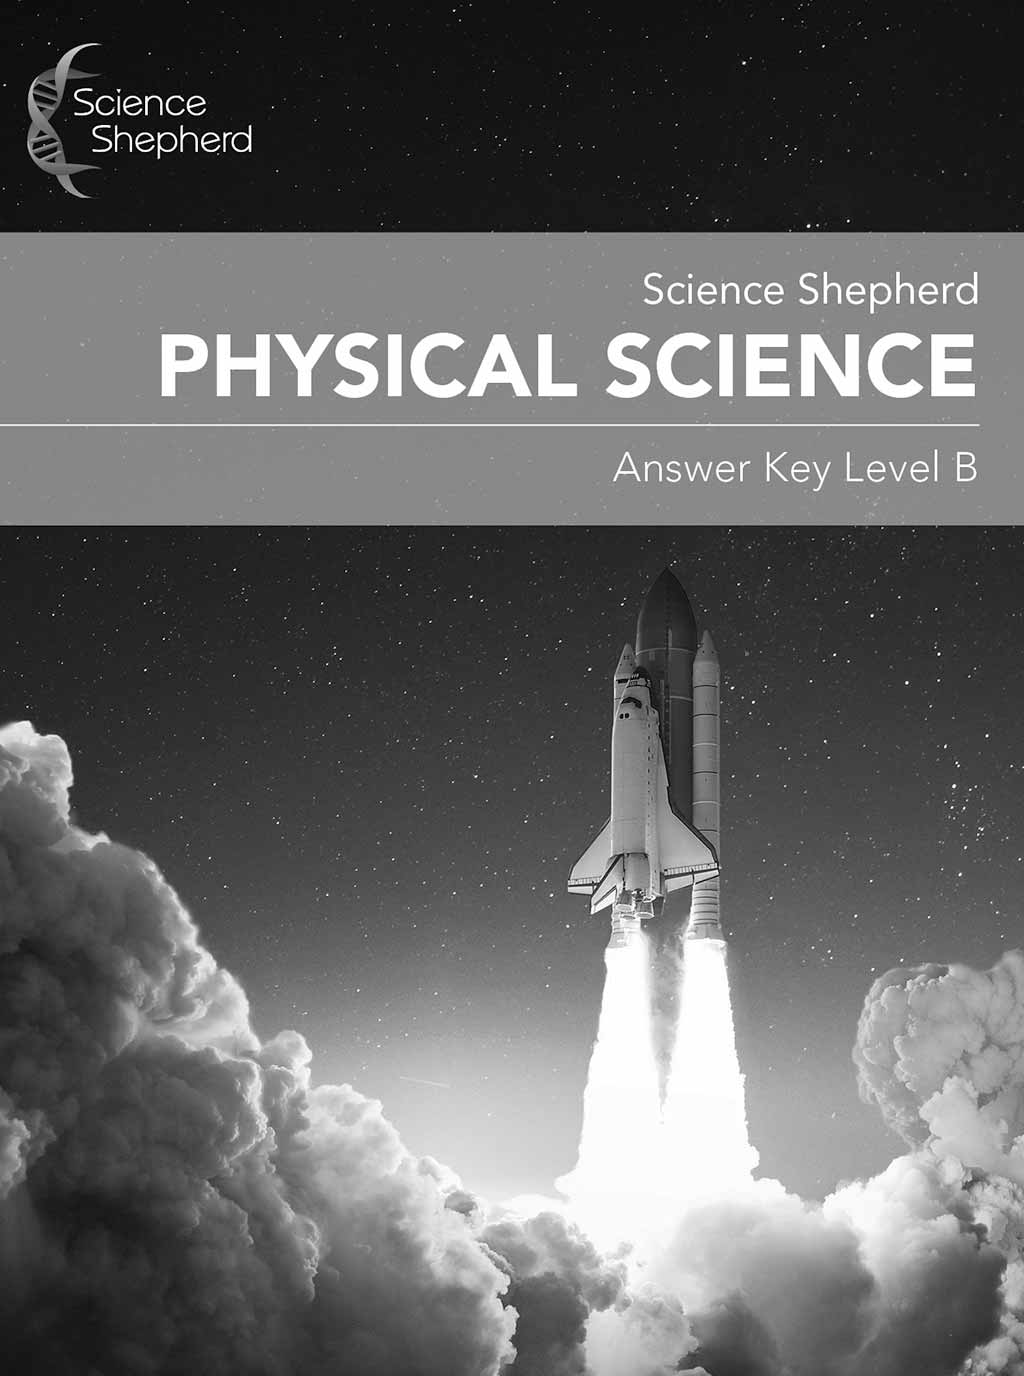 Physical Science 4th to 6th grade homeschool science answer key cover